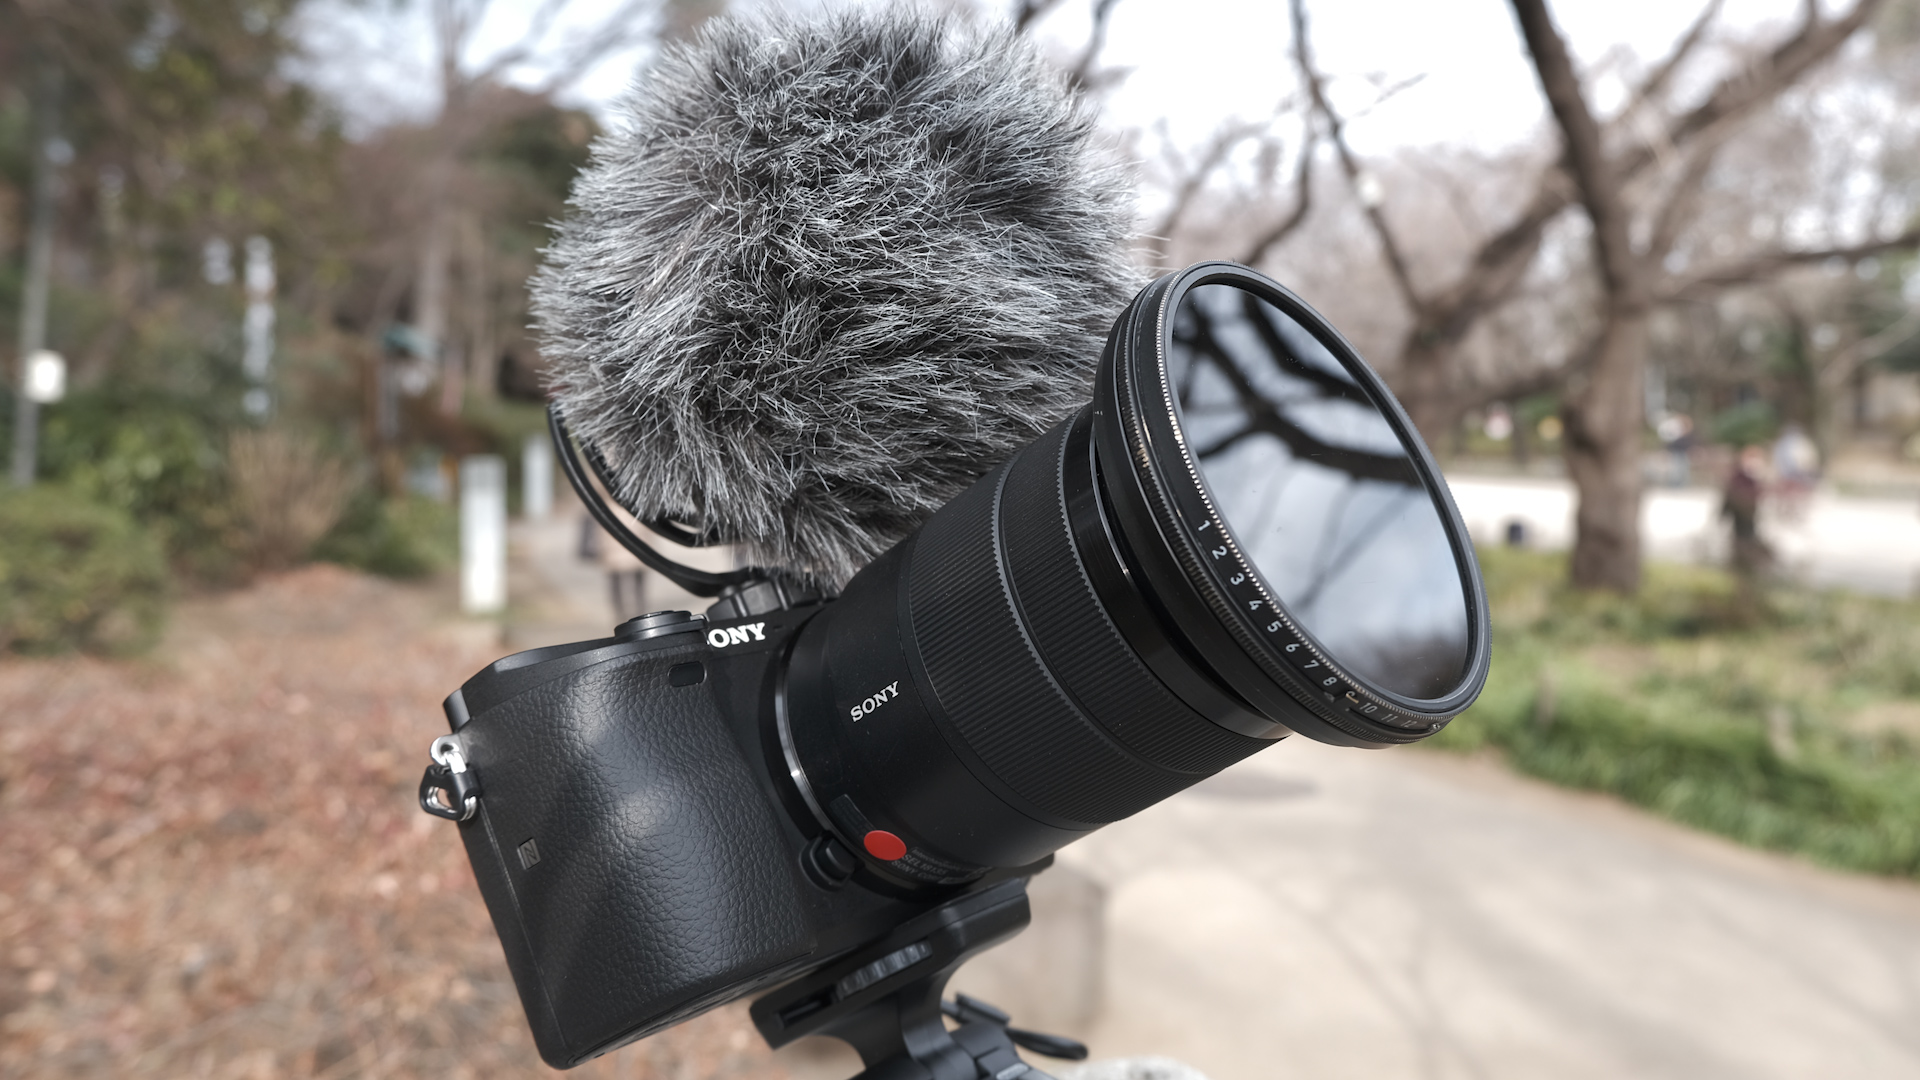 Sony a6400 Review - Is the End of Manual Focus Lenses Near